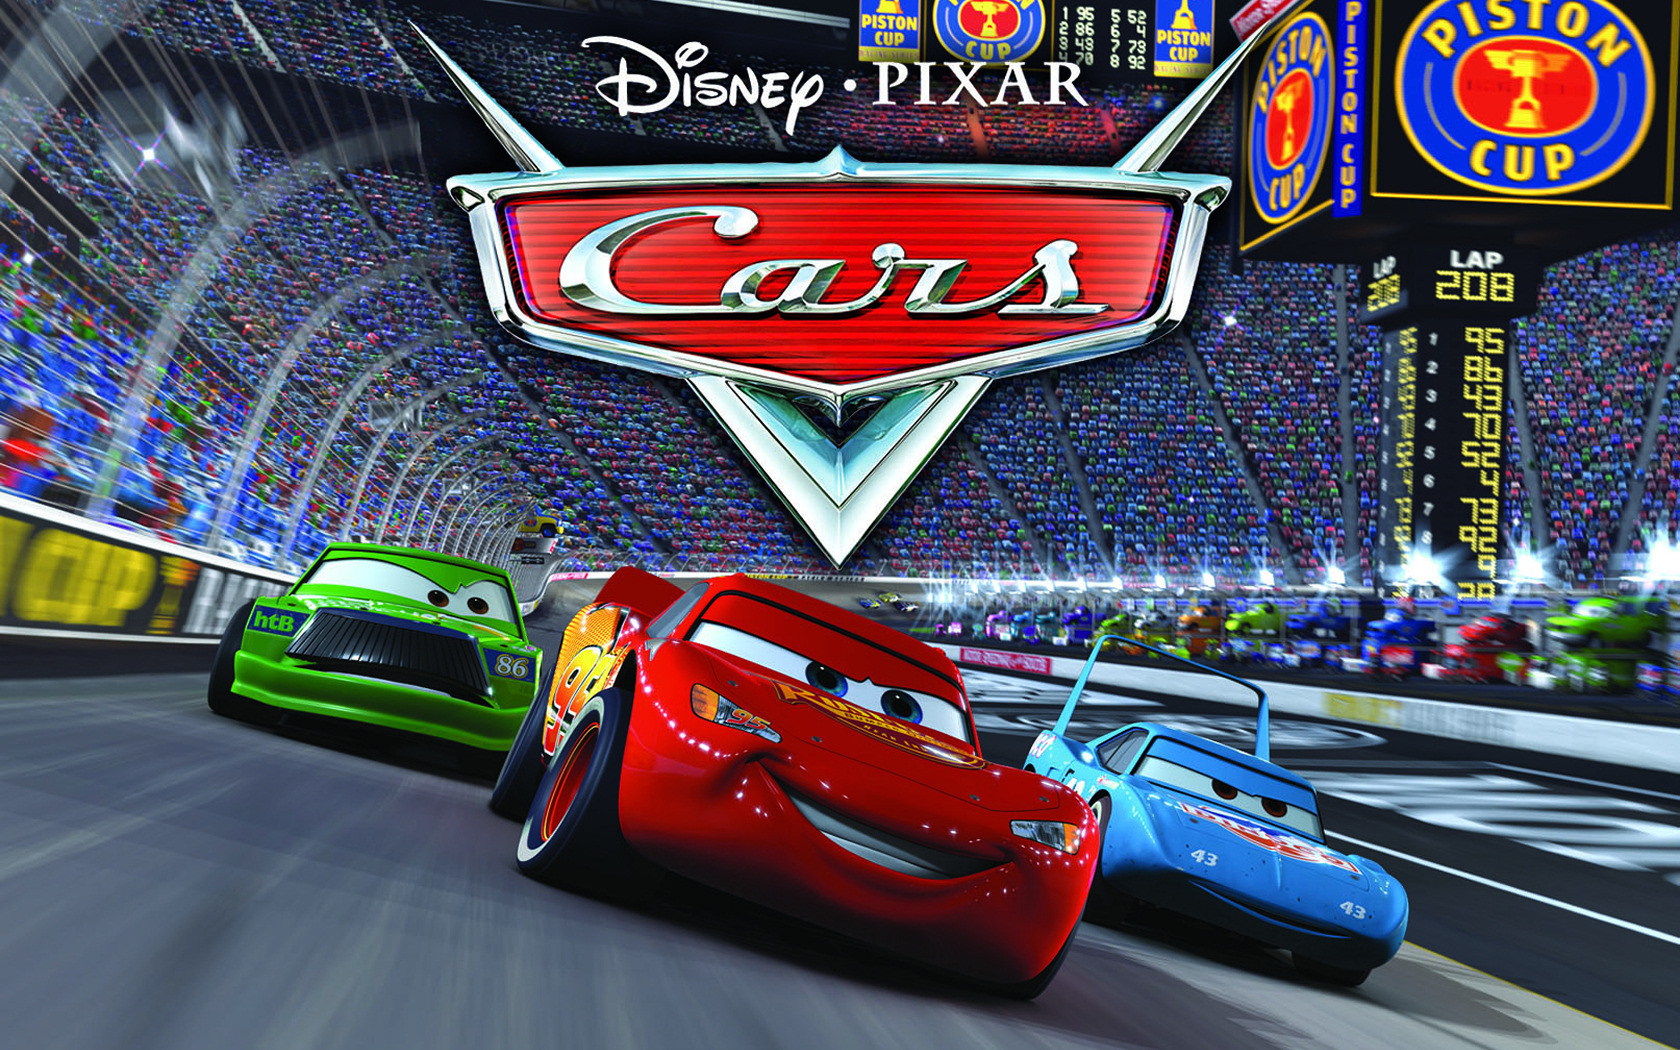 Mattel disney pixar cars 3 piston cup racers cars 1 to cars 3 visual - Cars 3 Coming In 2017 Mattel And Disney Consumer Products Announce Renewed Agreement For Disney